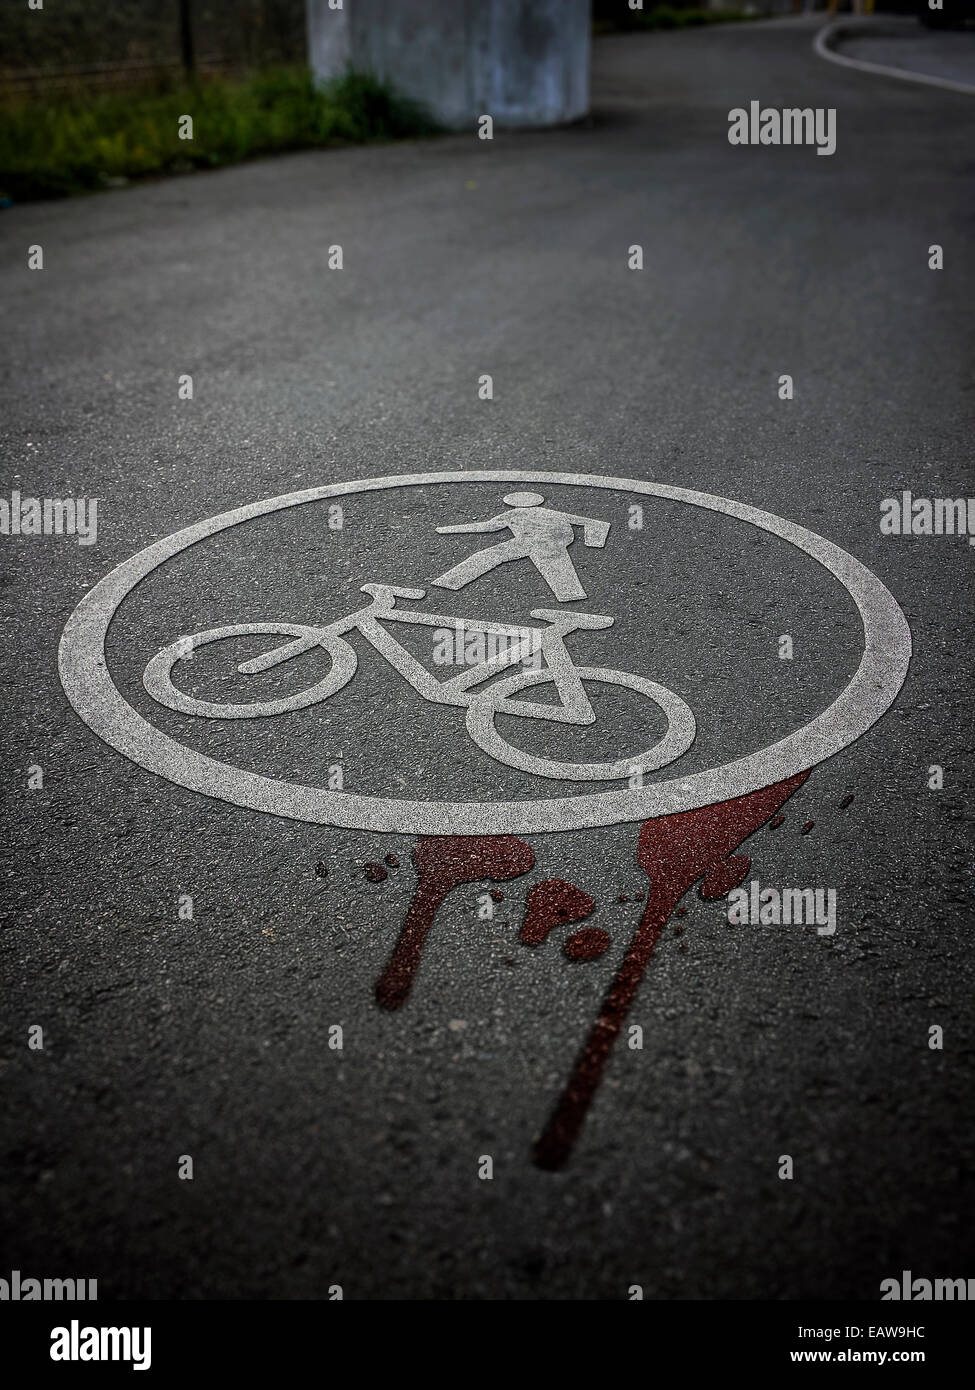 Cool effect bicycle pedestrian road sign symbol on bike lanes ground asphalt, blood,  accident, injuries, danger, - Stock Image